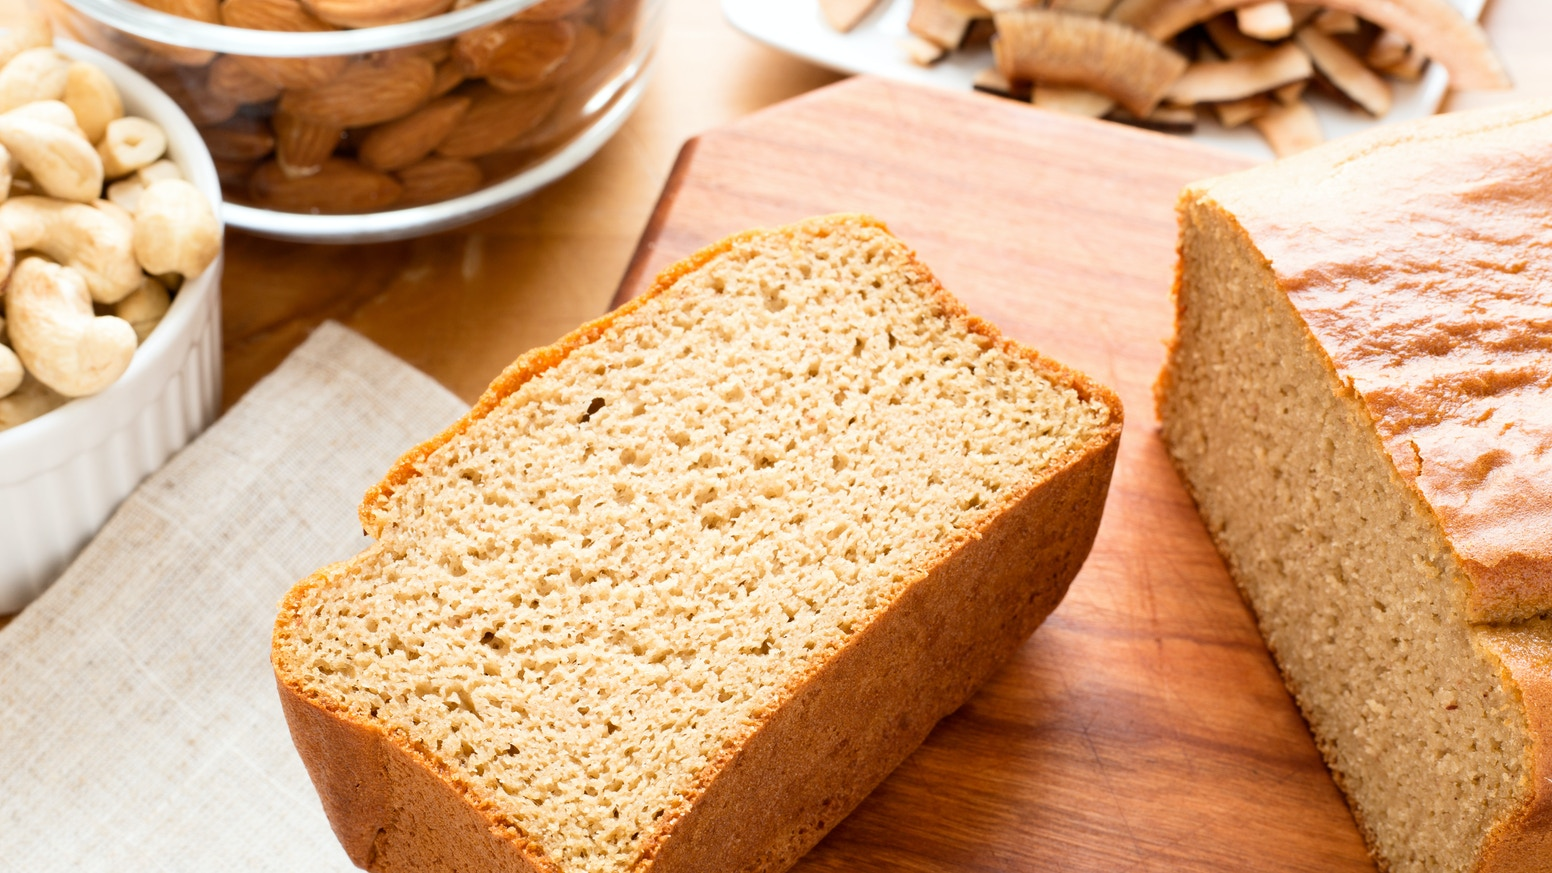 The Loaf makes tasty baked goods with organic and non-GMO ingredients. And they're paleo friendly!